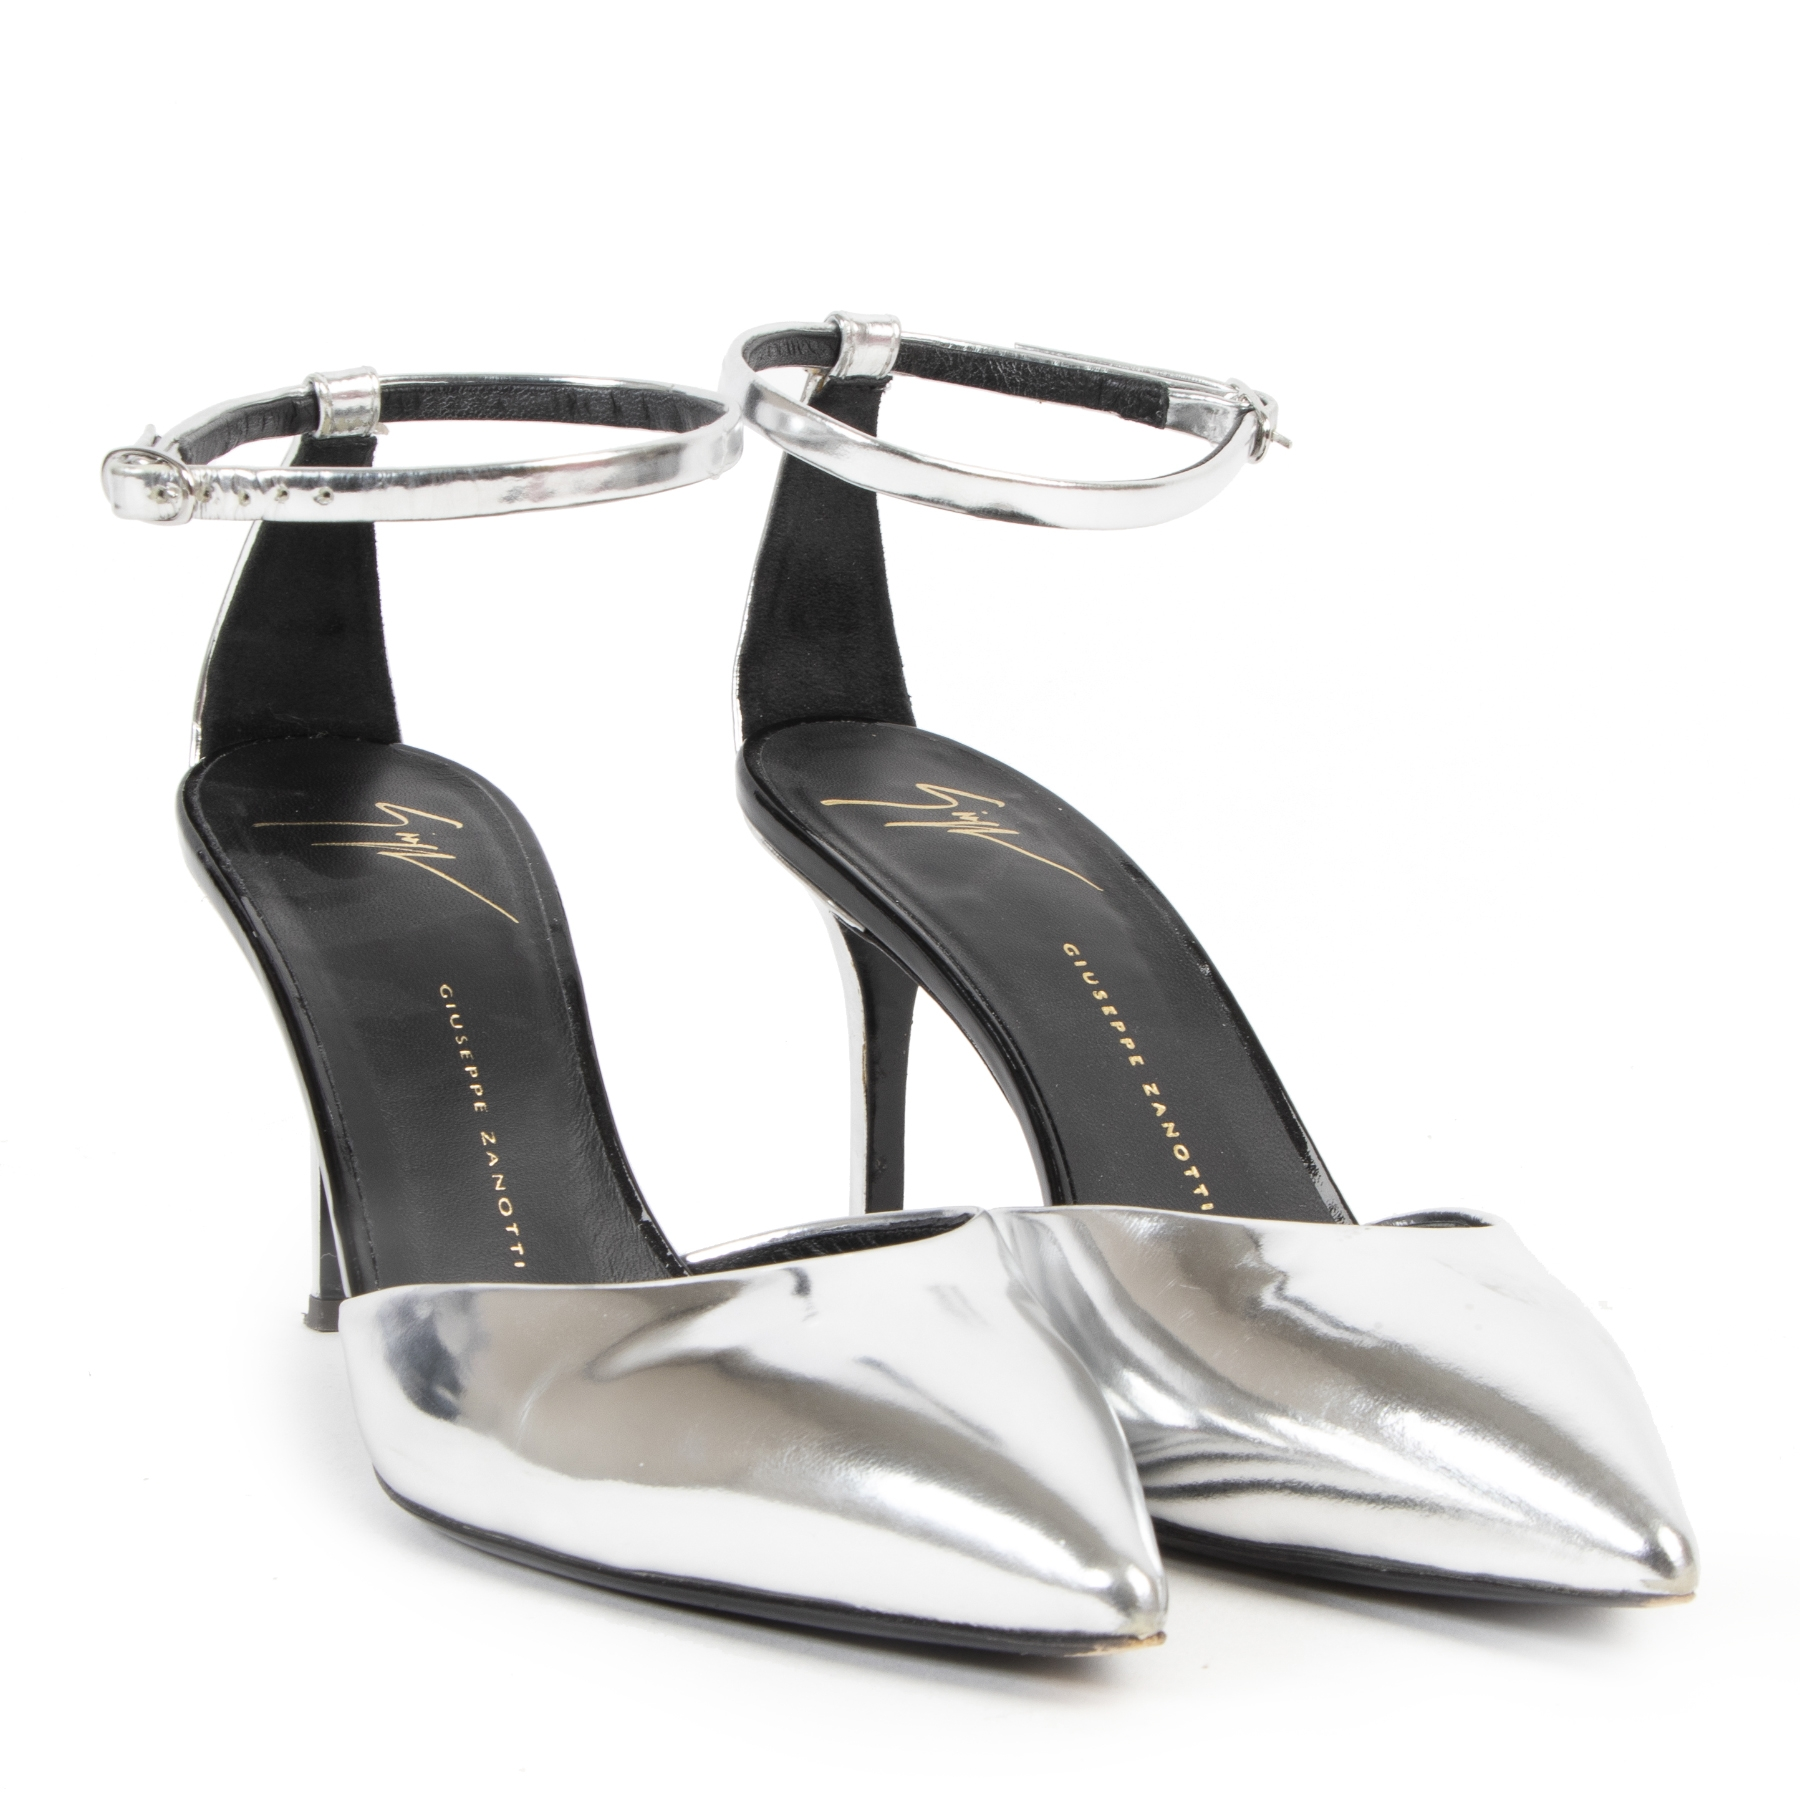 Authentic secondhand Giuseppe Zanotti Silver Pointed Pumps - Size 38 designer shoes pumps fashion luxury vintage webshop safe secure online shopping